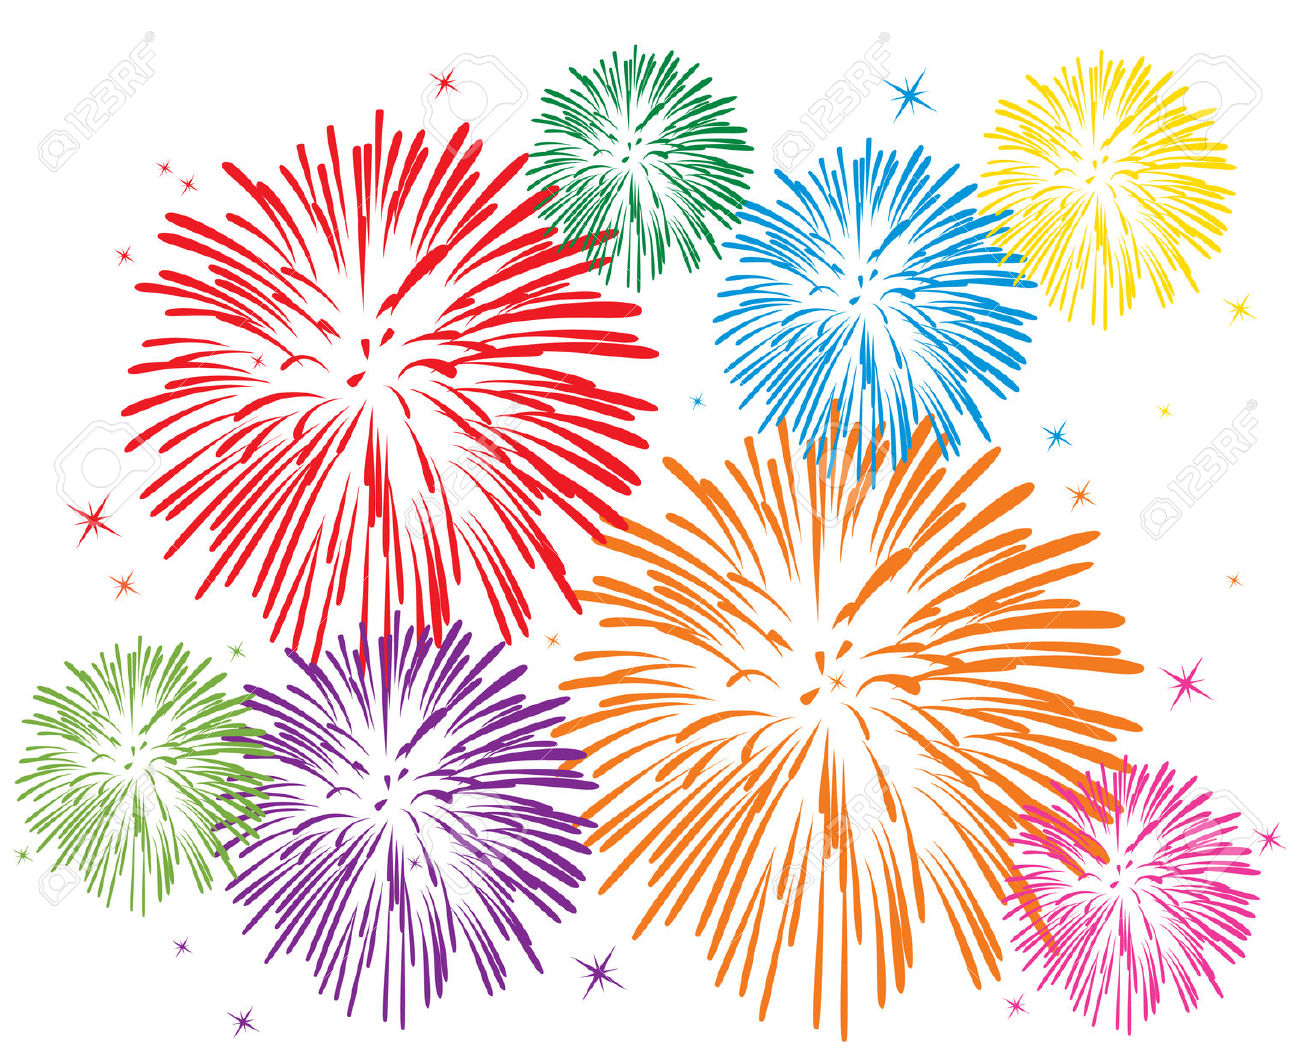 White Fireworks Stock Vector Illustration And Royalty Free White